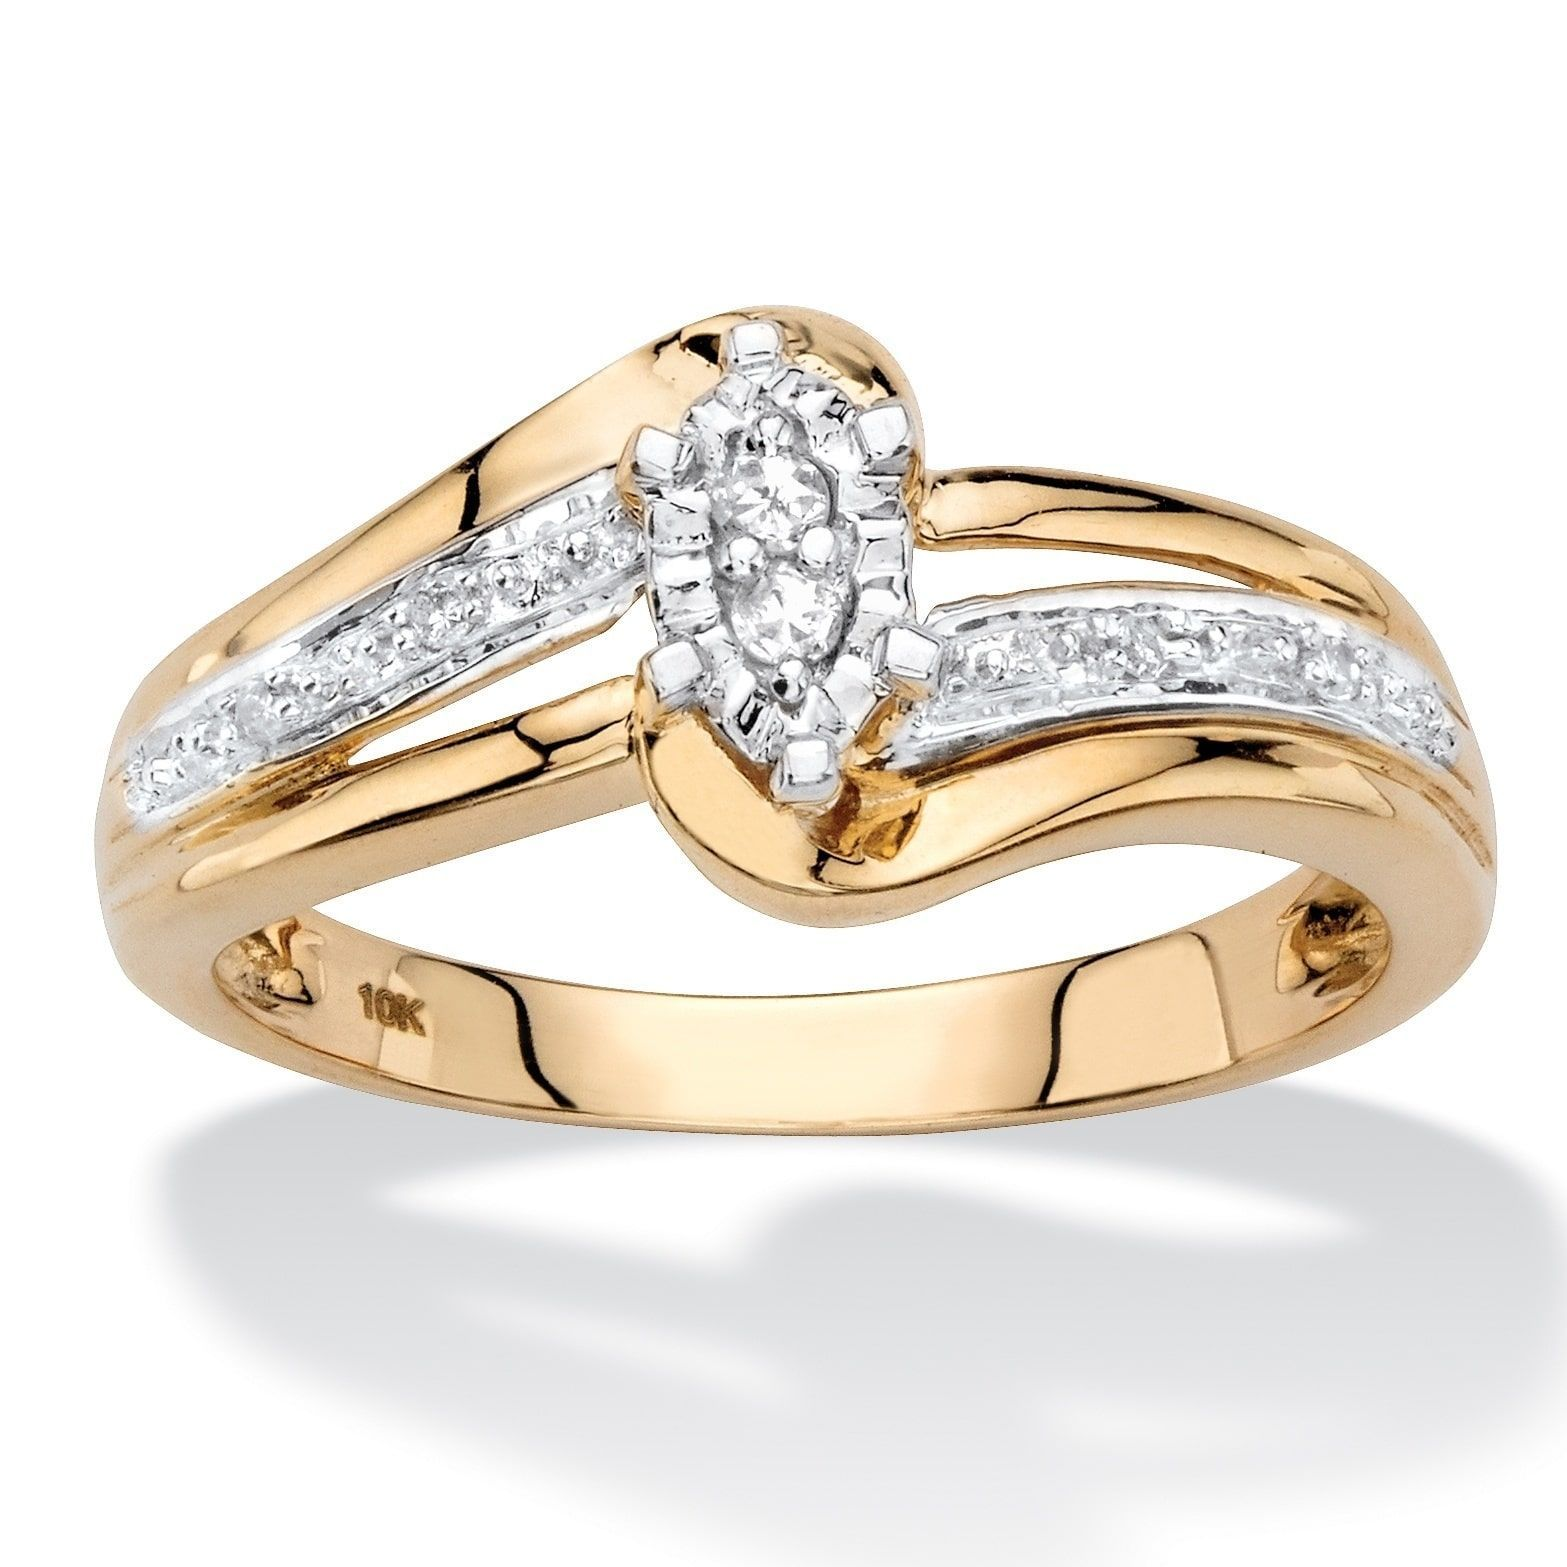 engagement five white facts friends gold wedding you rings square know halo your diamond like bezel with should that important it accent about set share ring diamonds